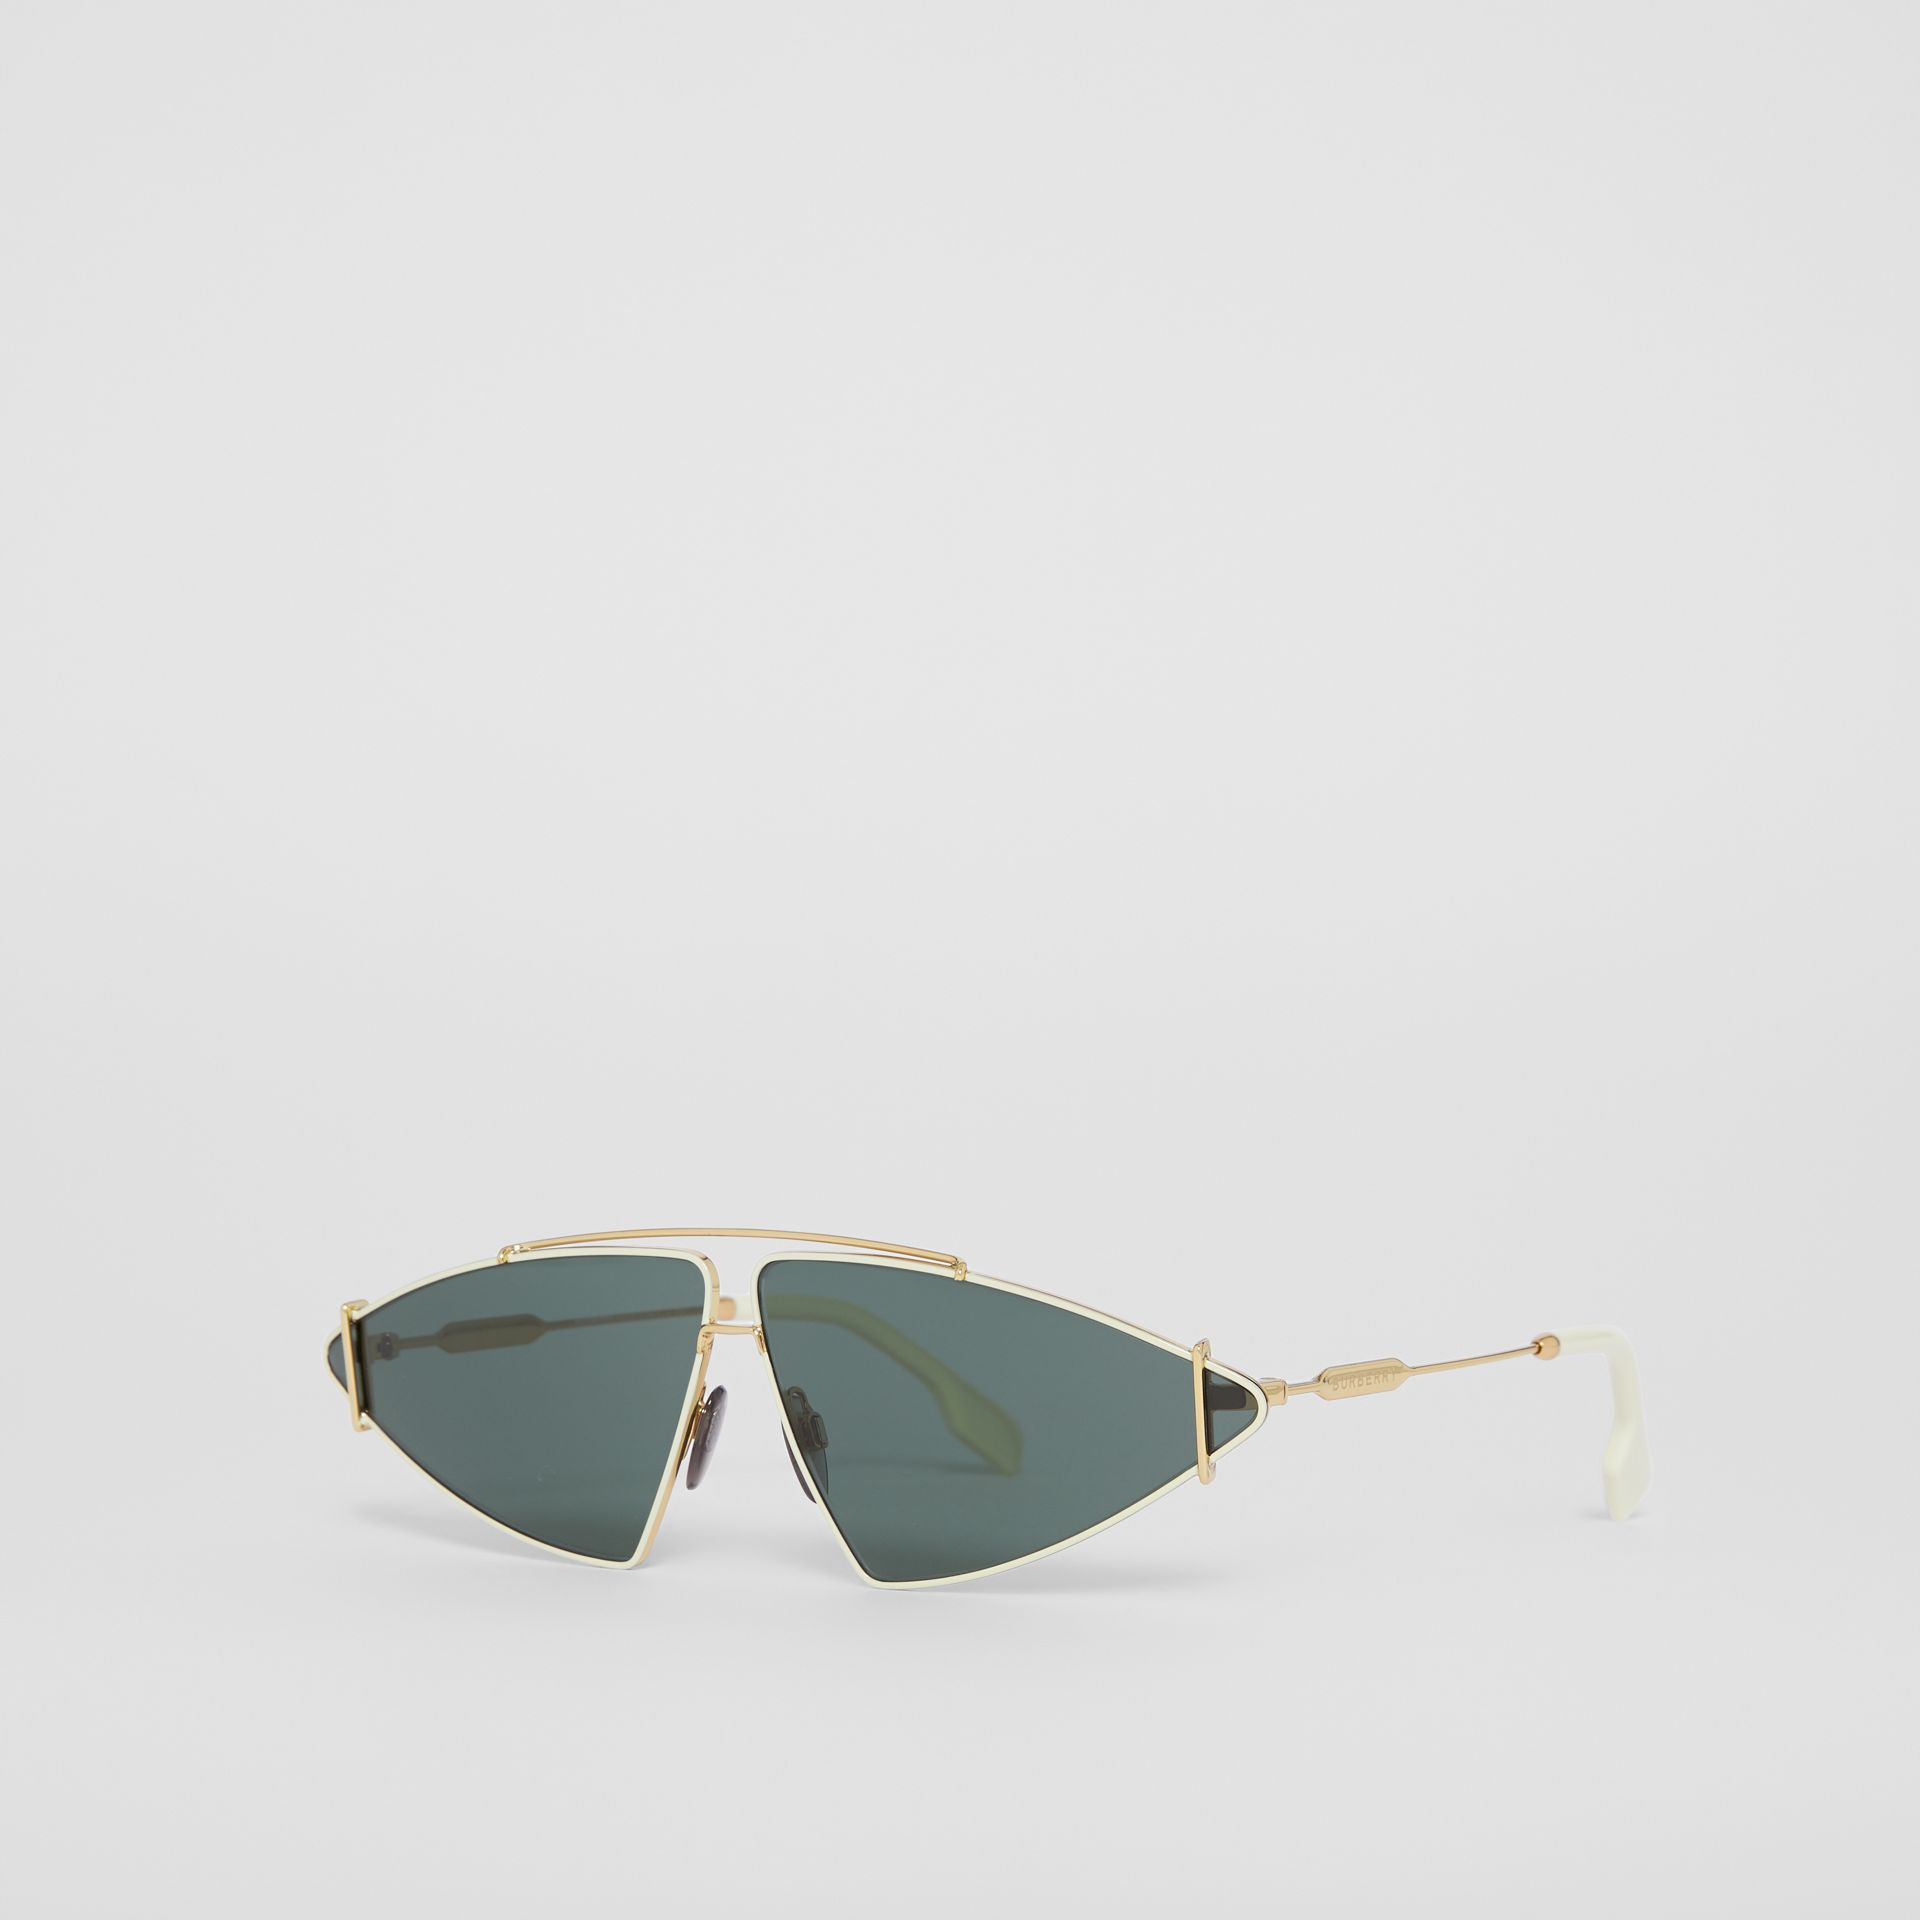 Gold-plated Triangular Frame Sunglasses in Pistachio - Women | Burberry - gallery image 5